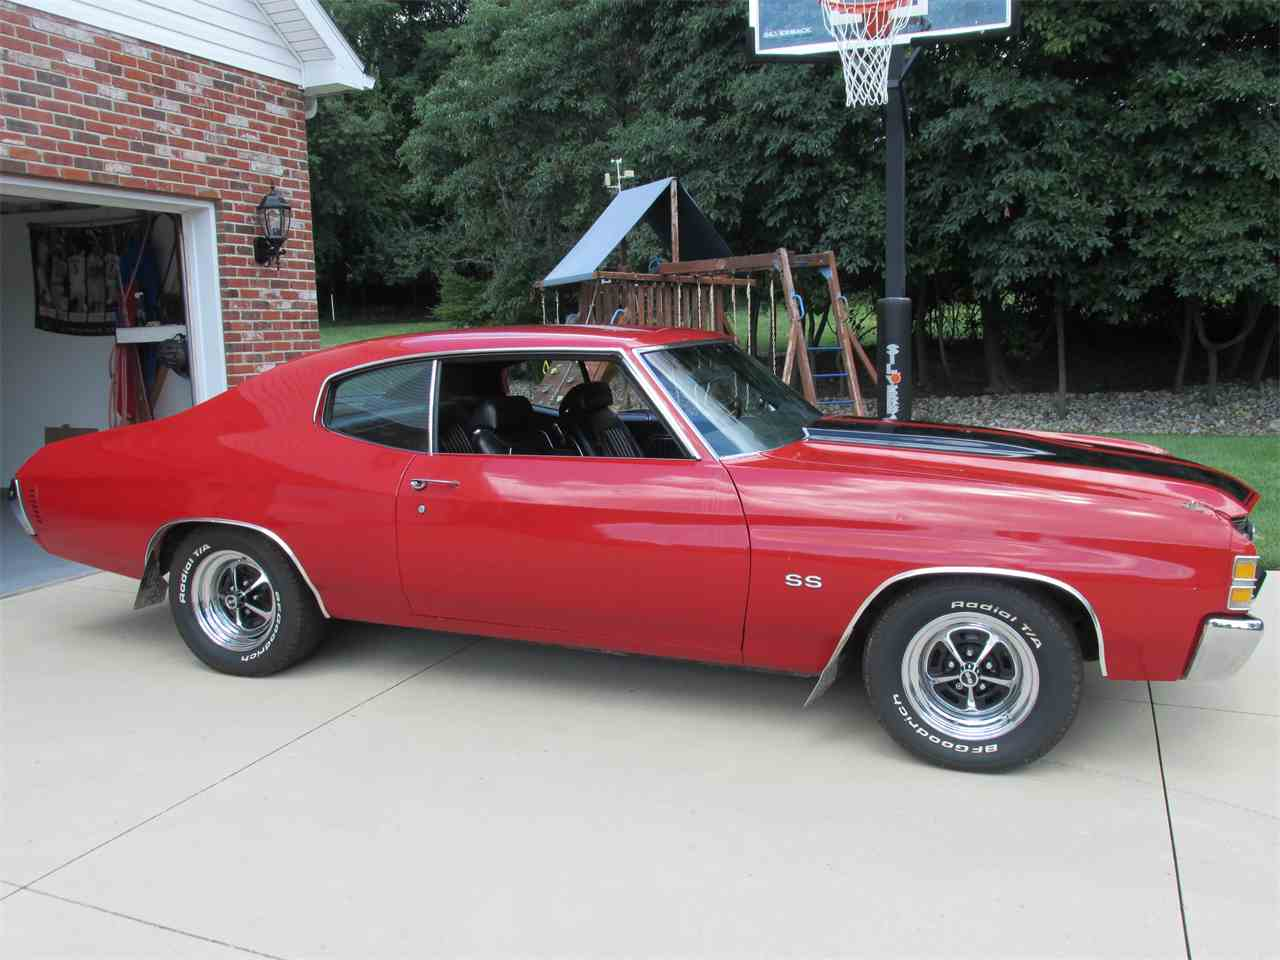 Large Picture of 1971 Chevrolet Chevelle SS located in Godfrey Illinois - $26,500.00 Offered by a Private Seller - JRT1